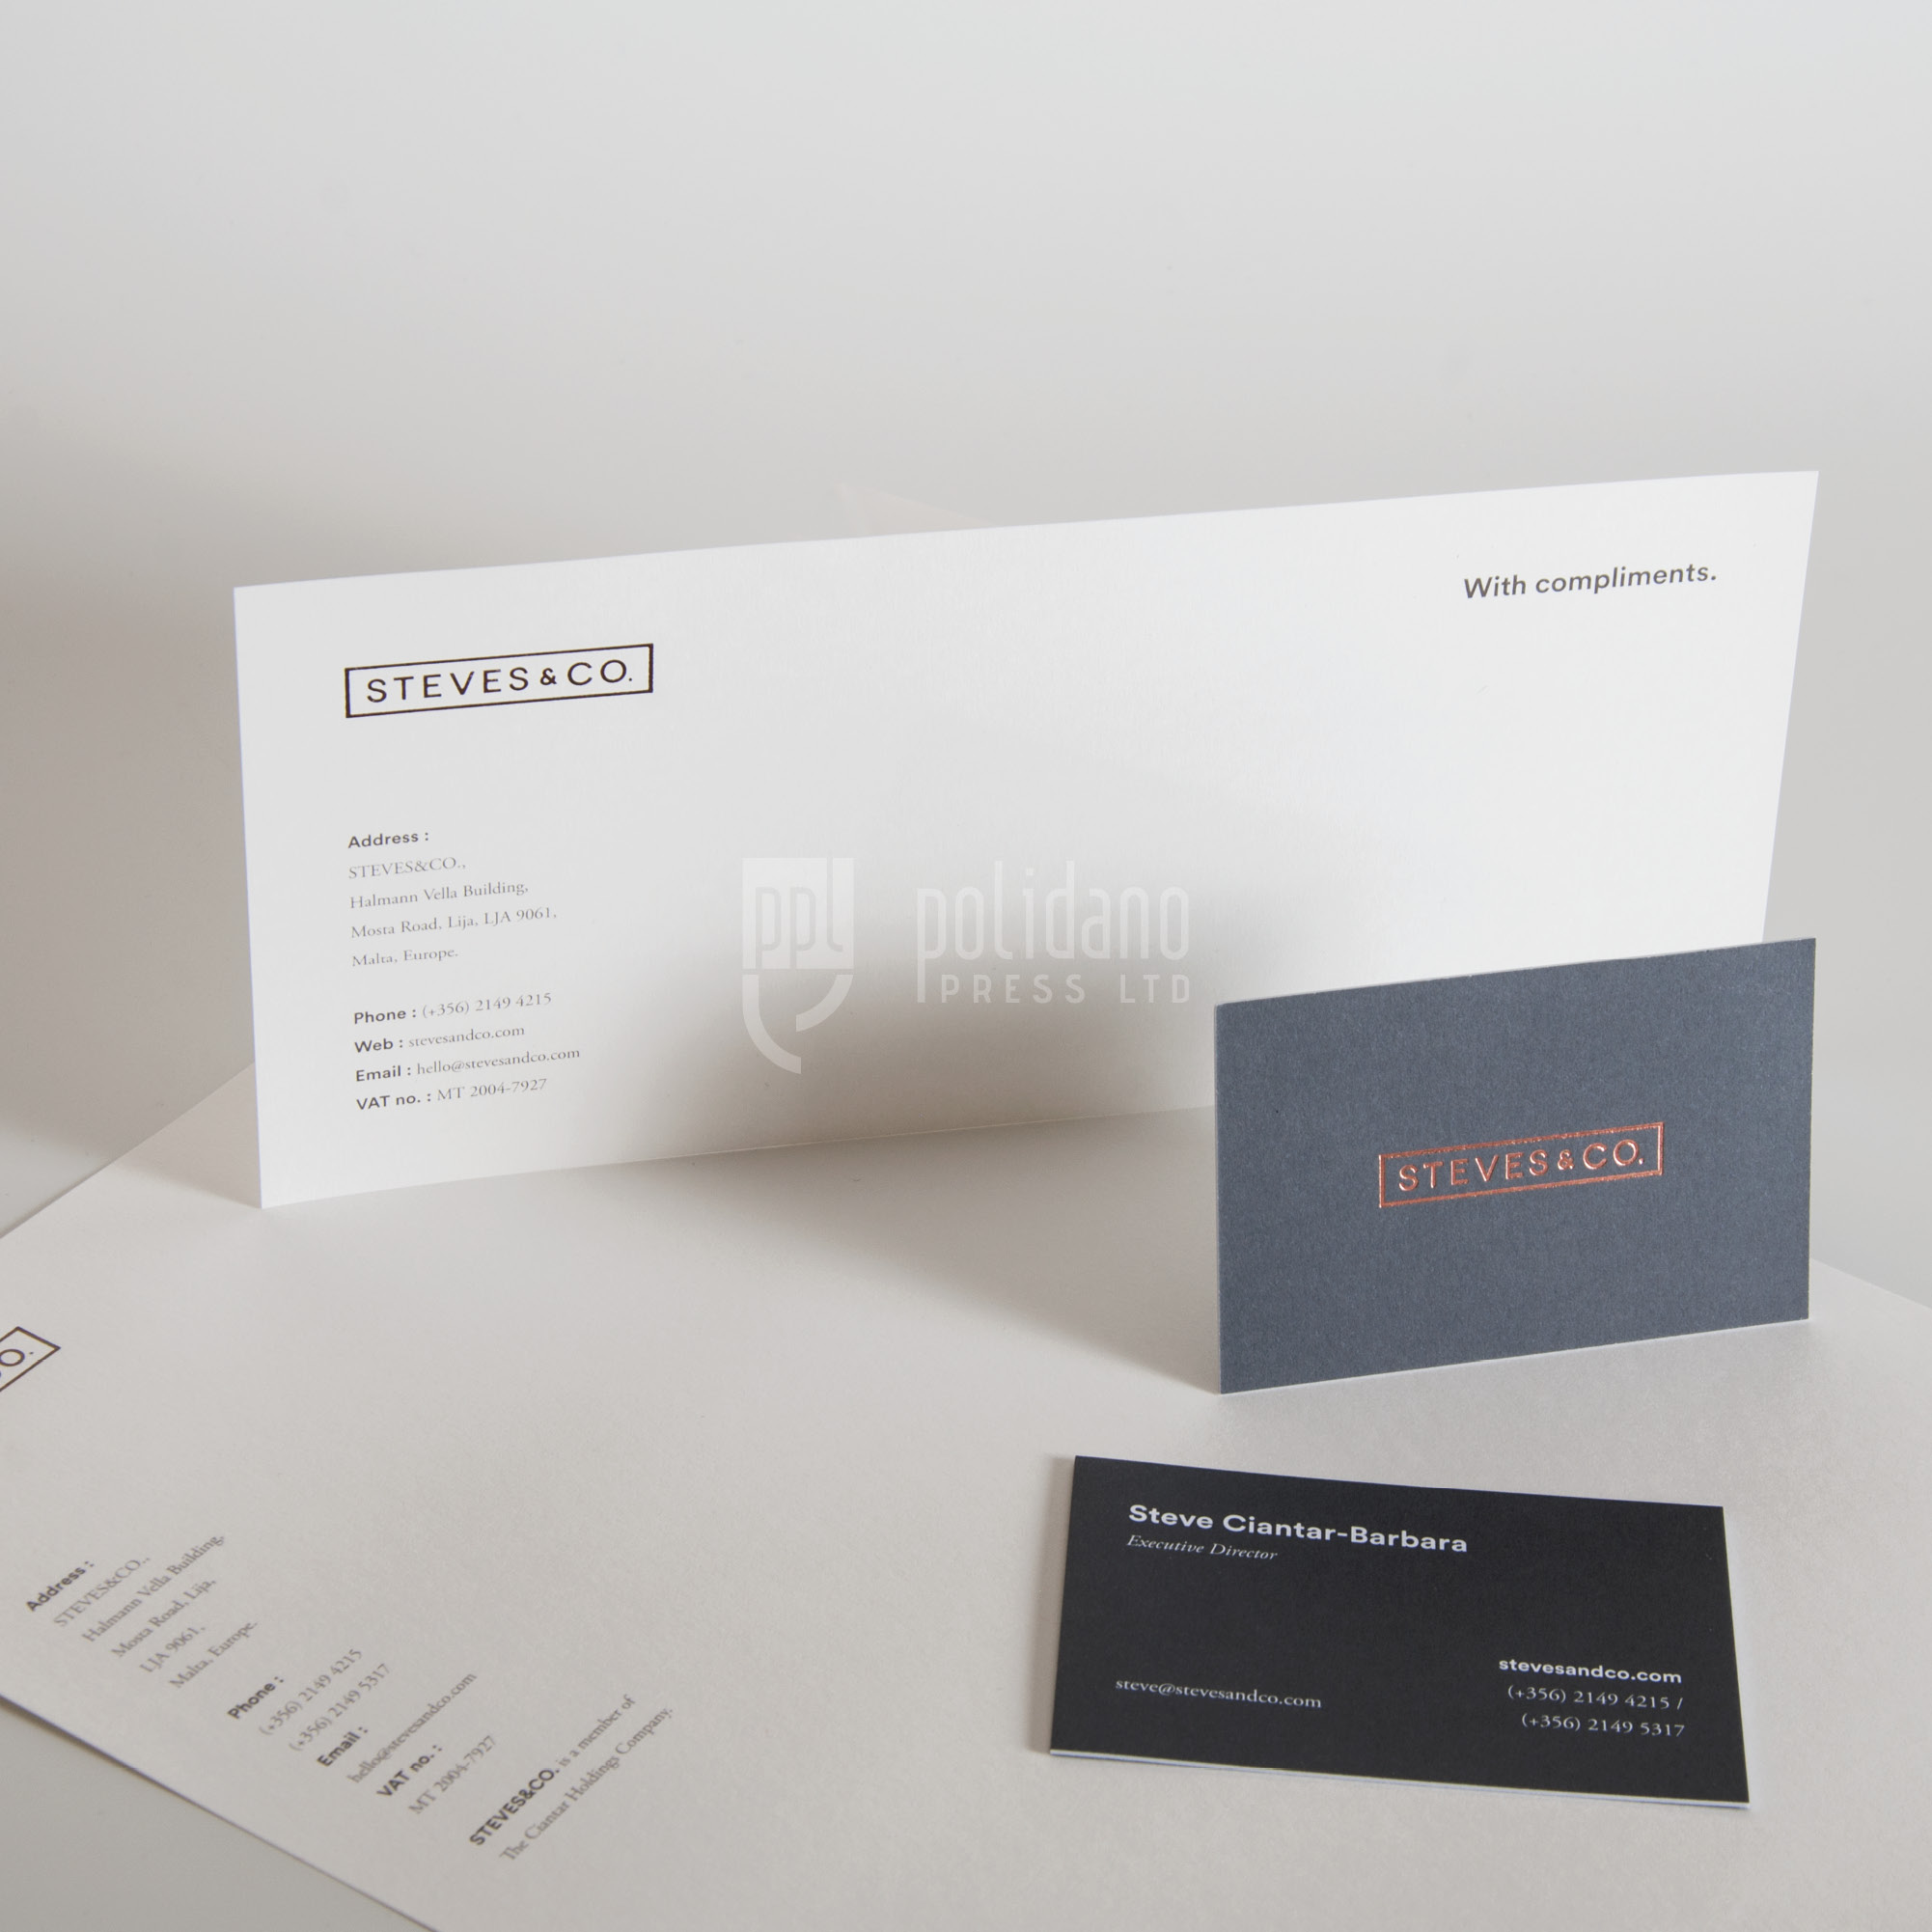 Steves & Co stationery